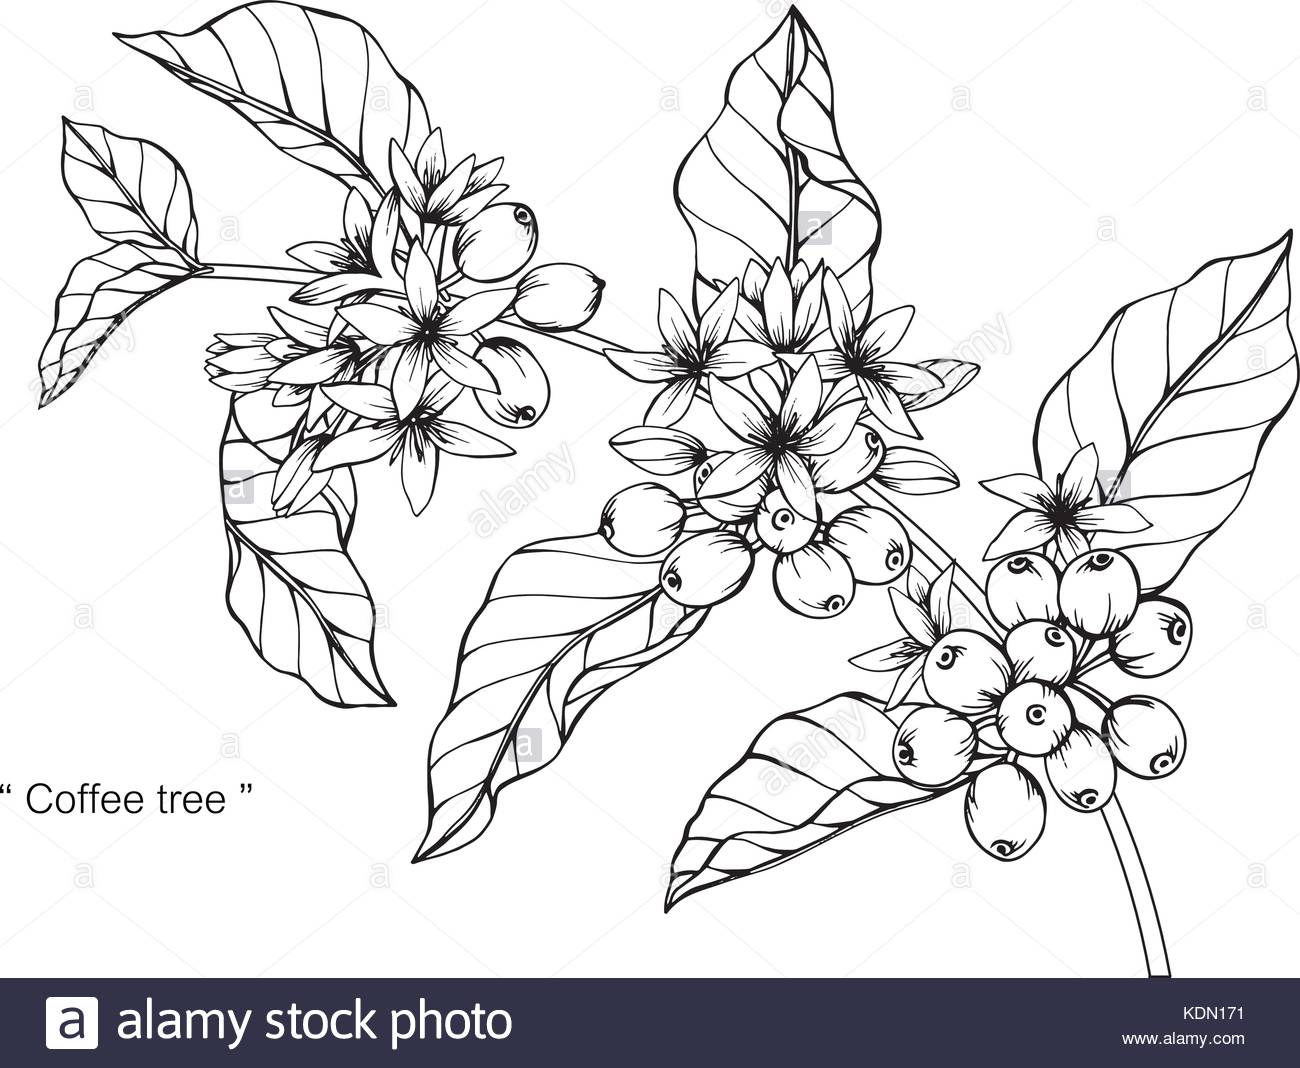 1300x1068 Tree Line Drawing Stock Photos Amp Tree Line Drawing Stock Images